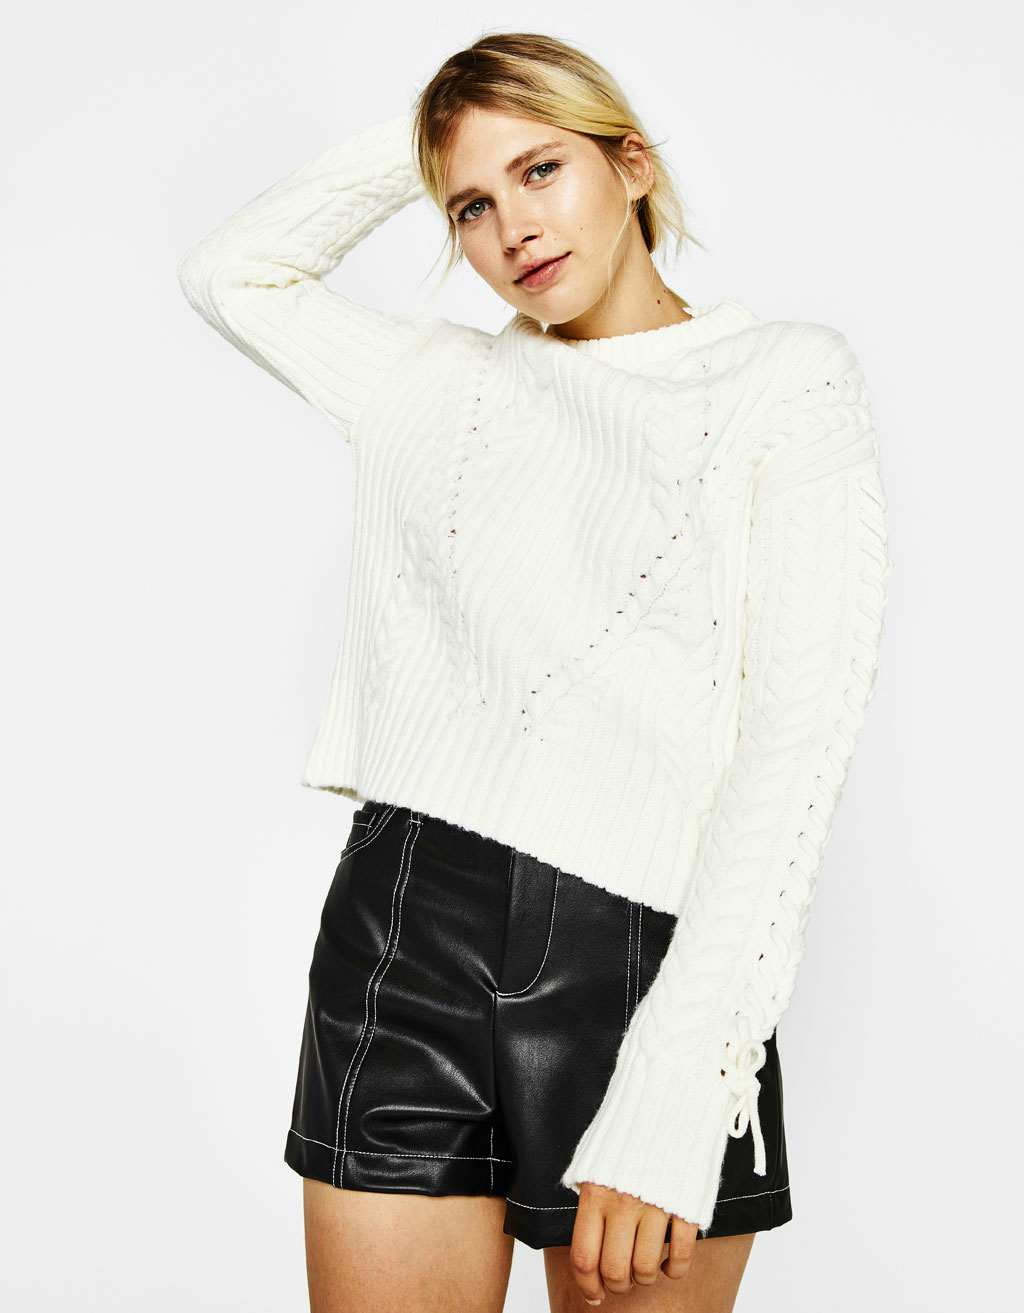 Cheap And Chic Knit Sweaters For Winter The Coolspotter